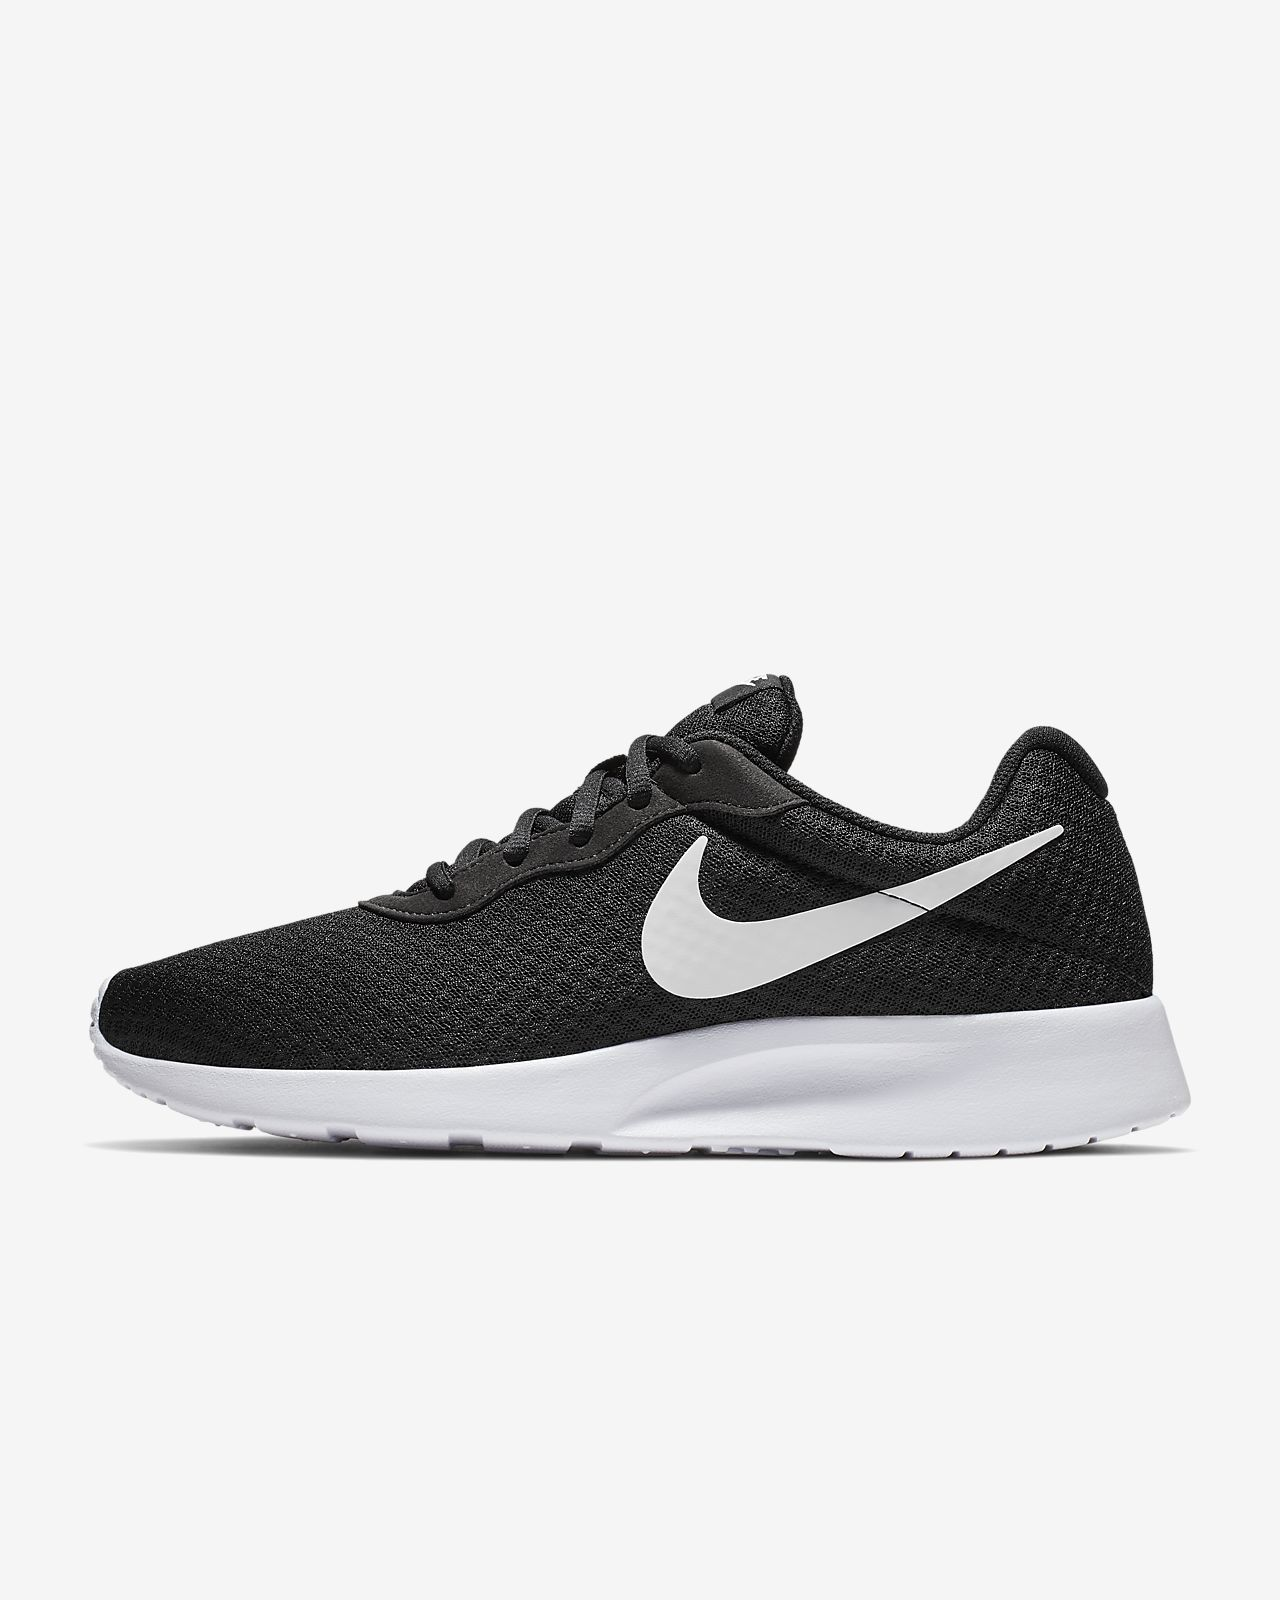 low priced 6348b 22faa Low Resolution Nike Tanjun Men s Shoe Nike Tanjun Men s Shoe